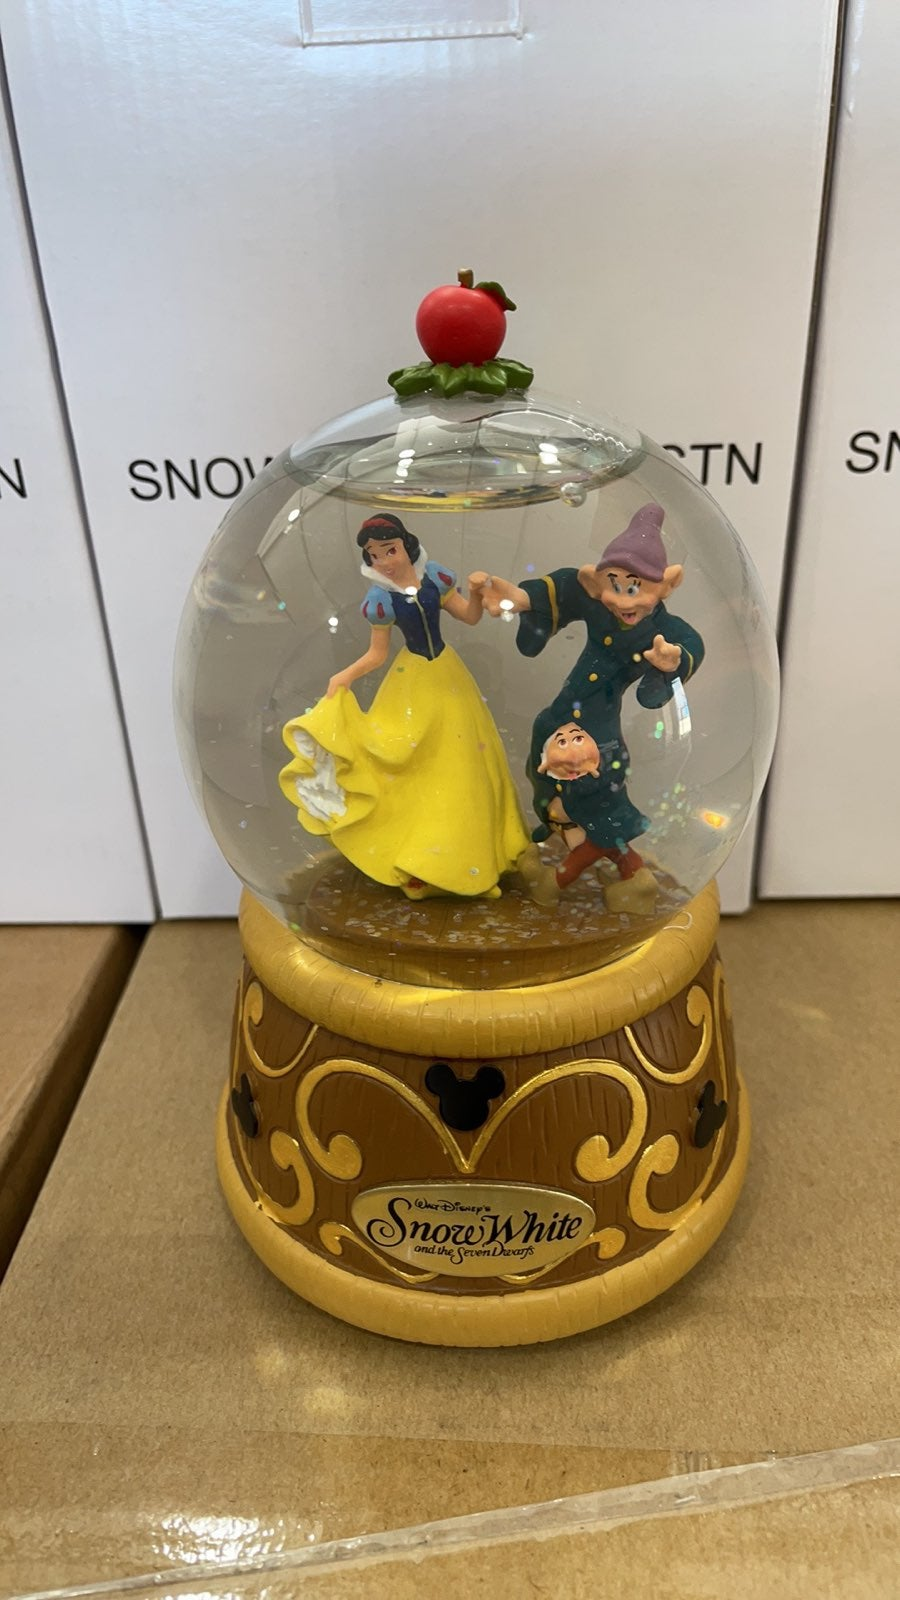 Disney Park Snow White Musical Snowglobe